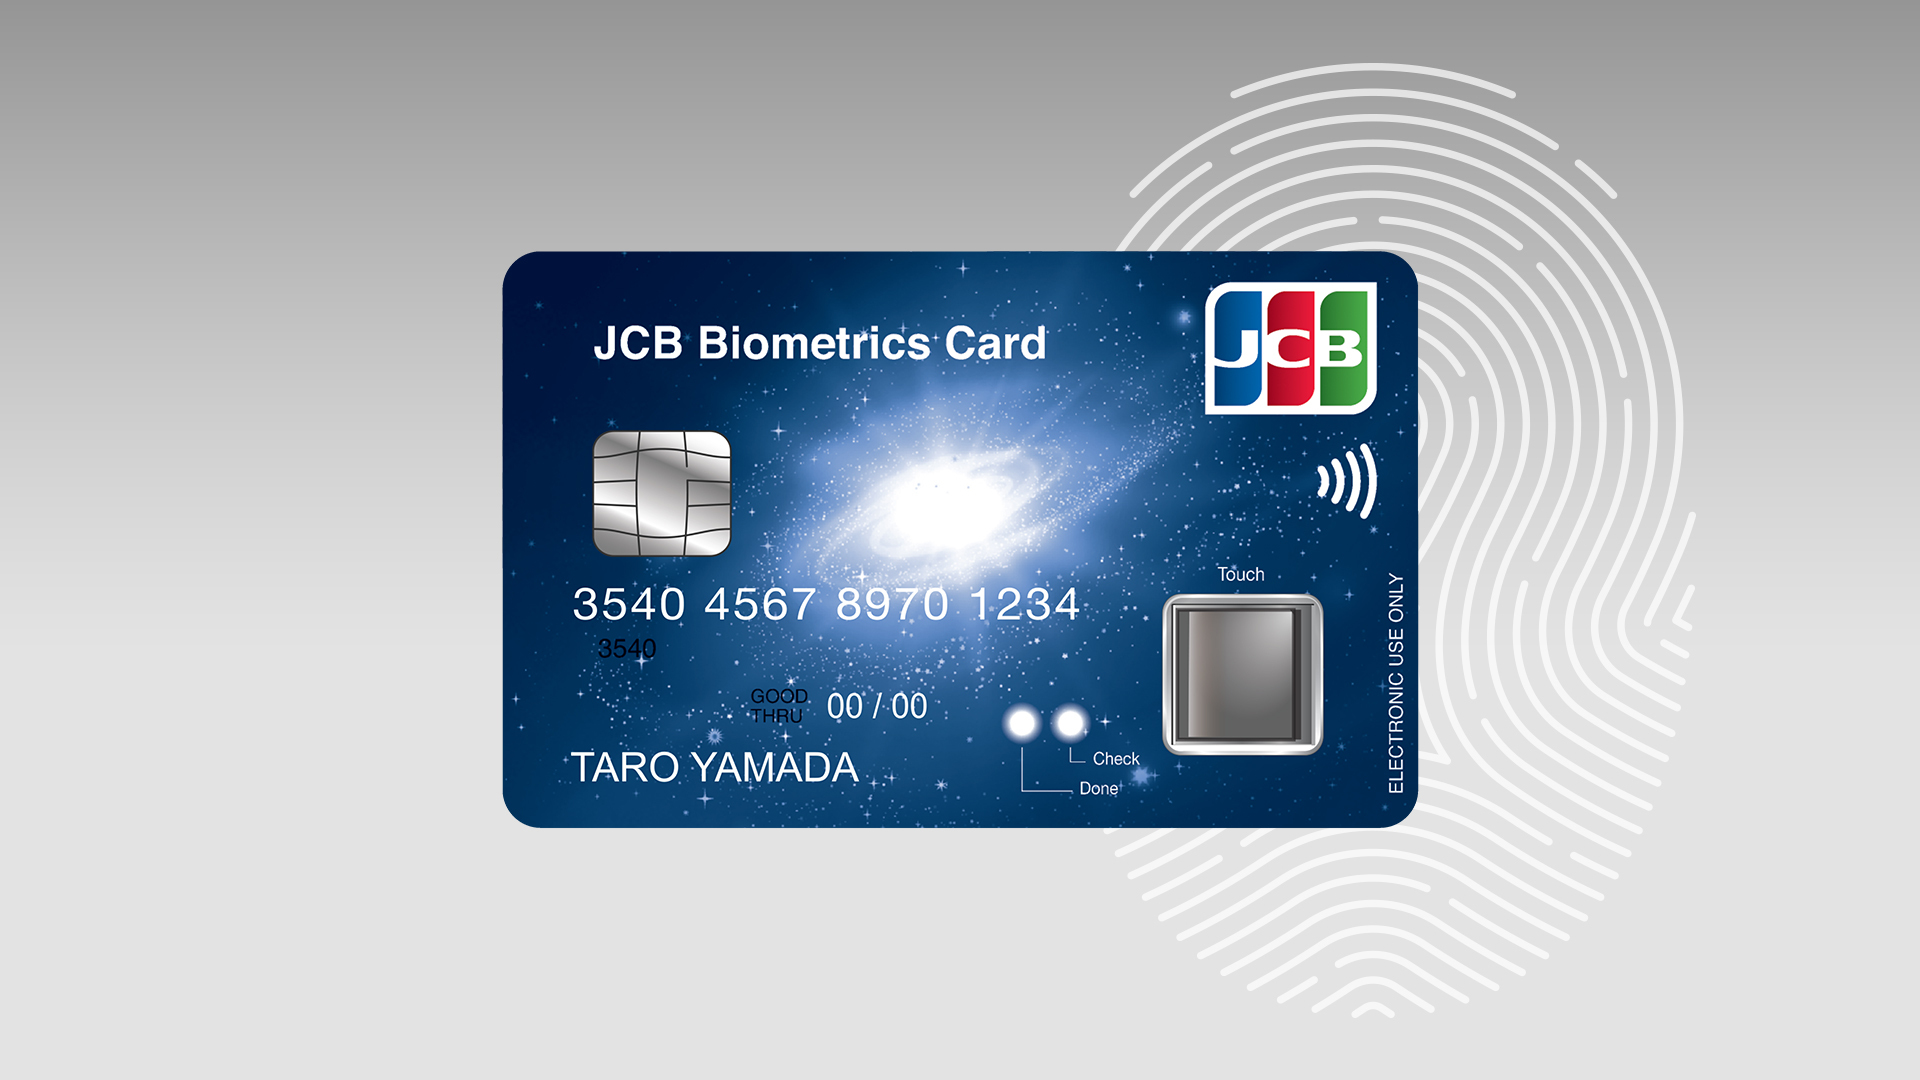 IDEMIA and JCB Trial of the First F.CODE Payment Card in Japan ...